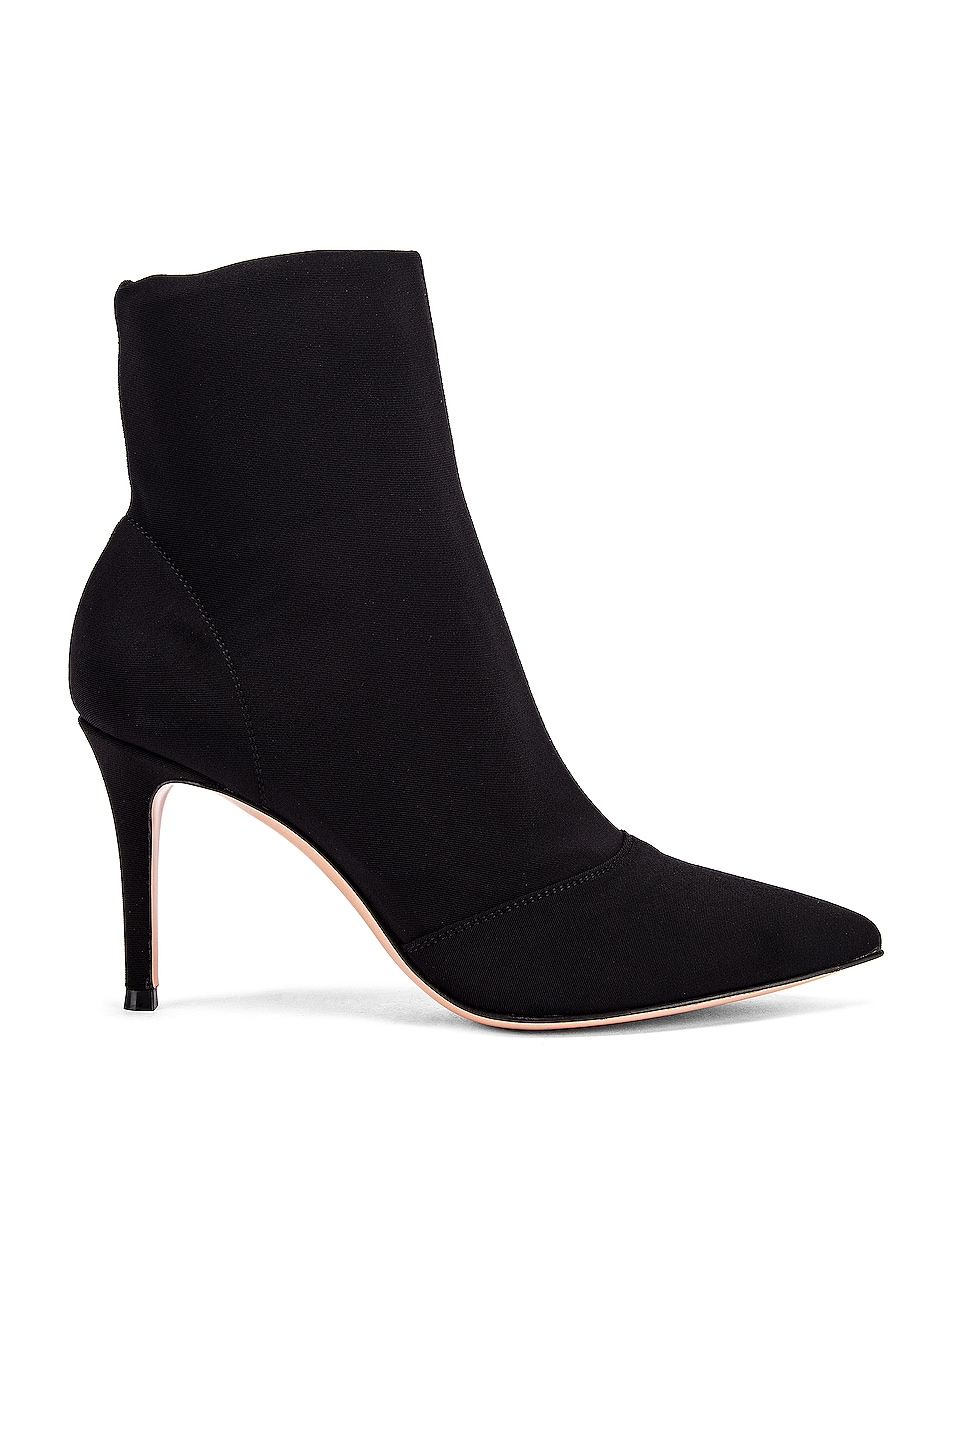 Image 1 of Gianvito Rossi Stretch Ankle Booties in Black